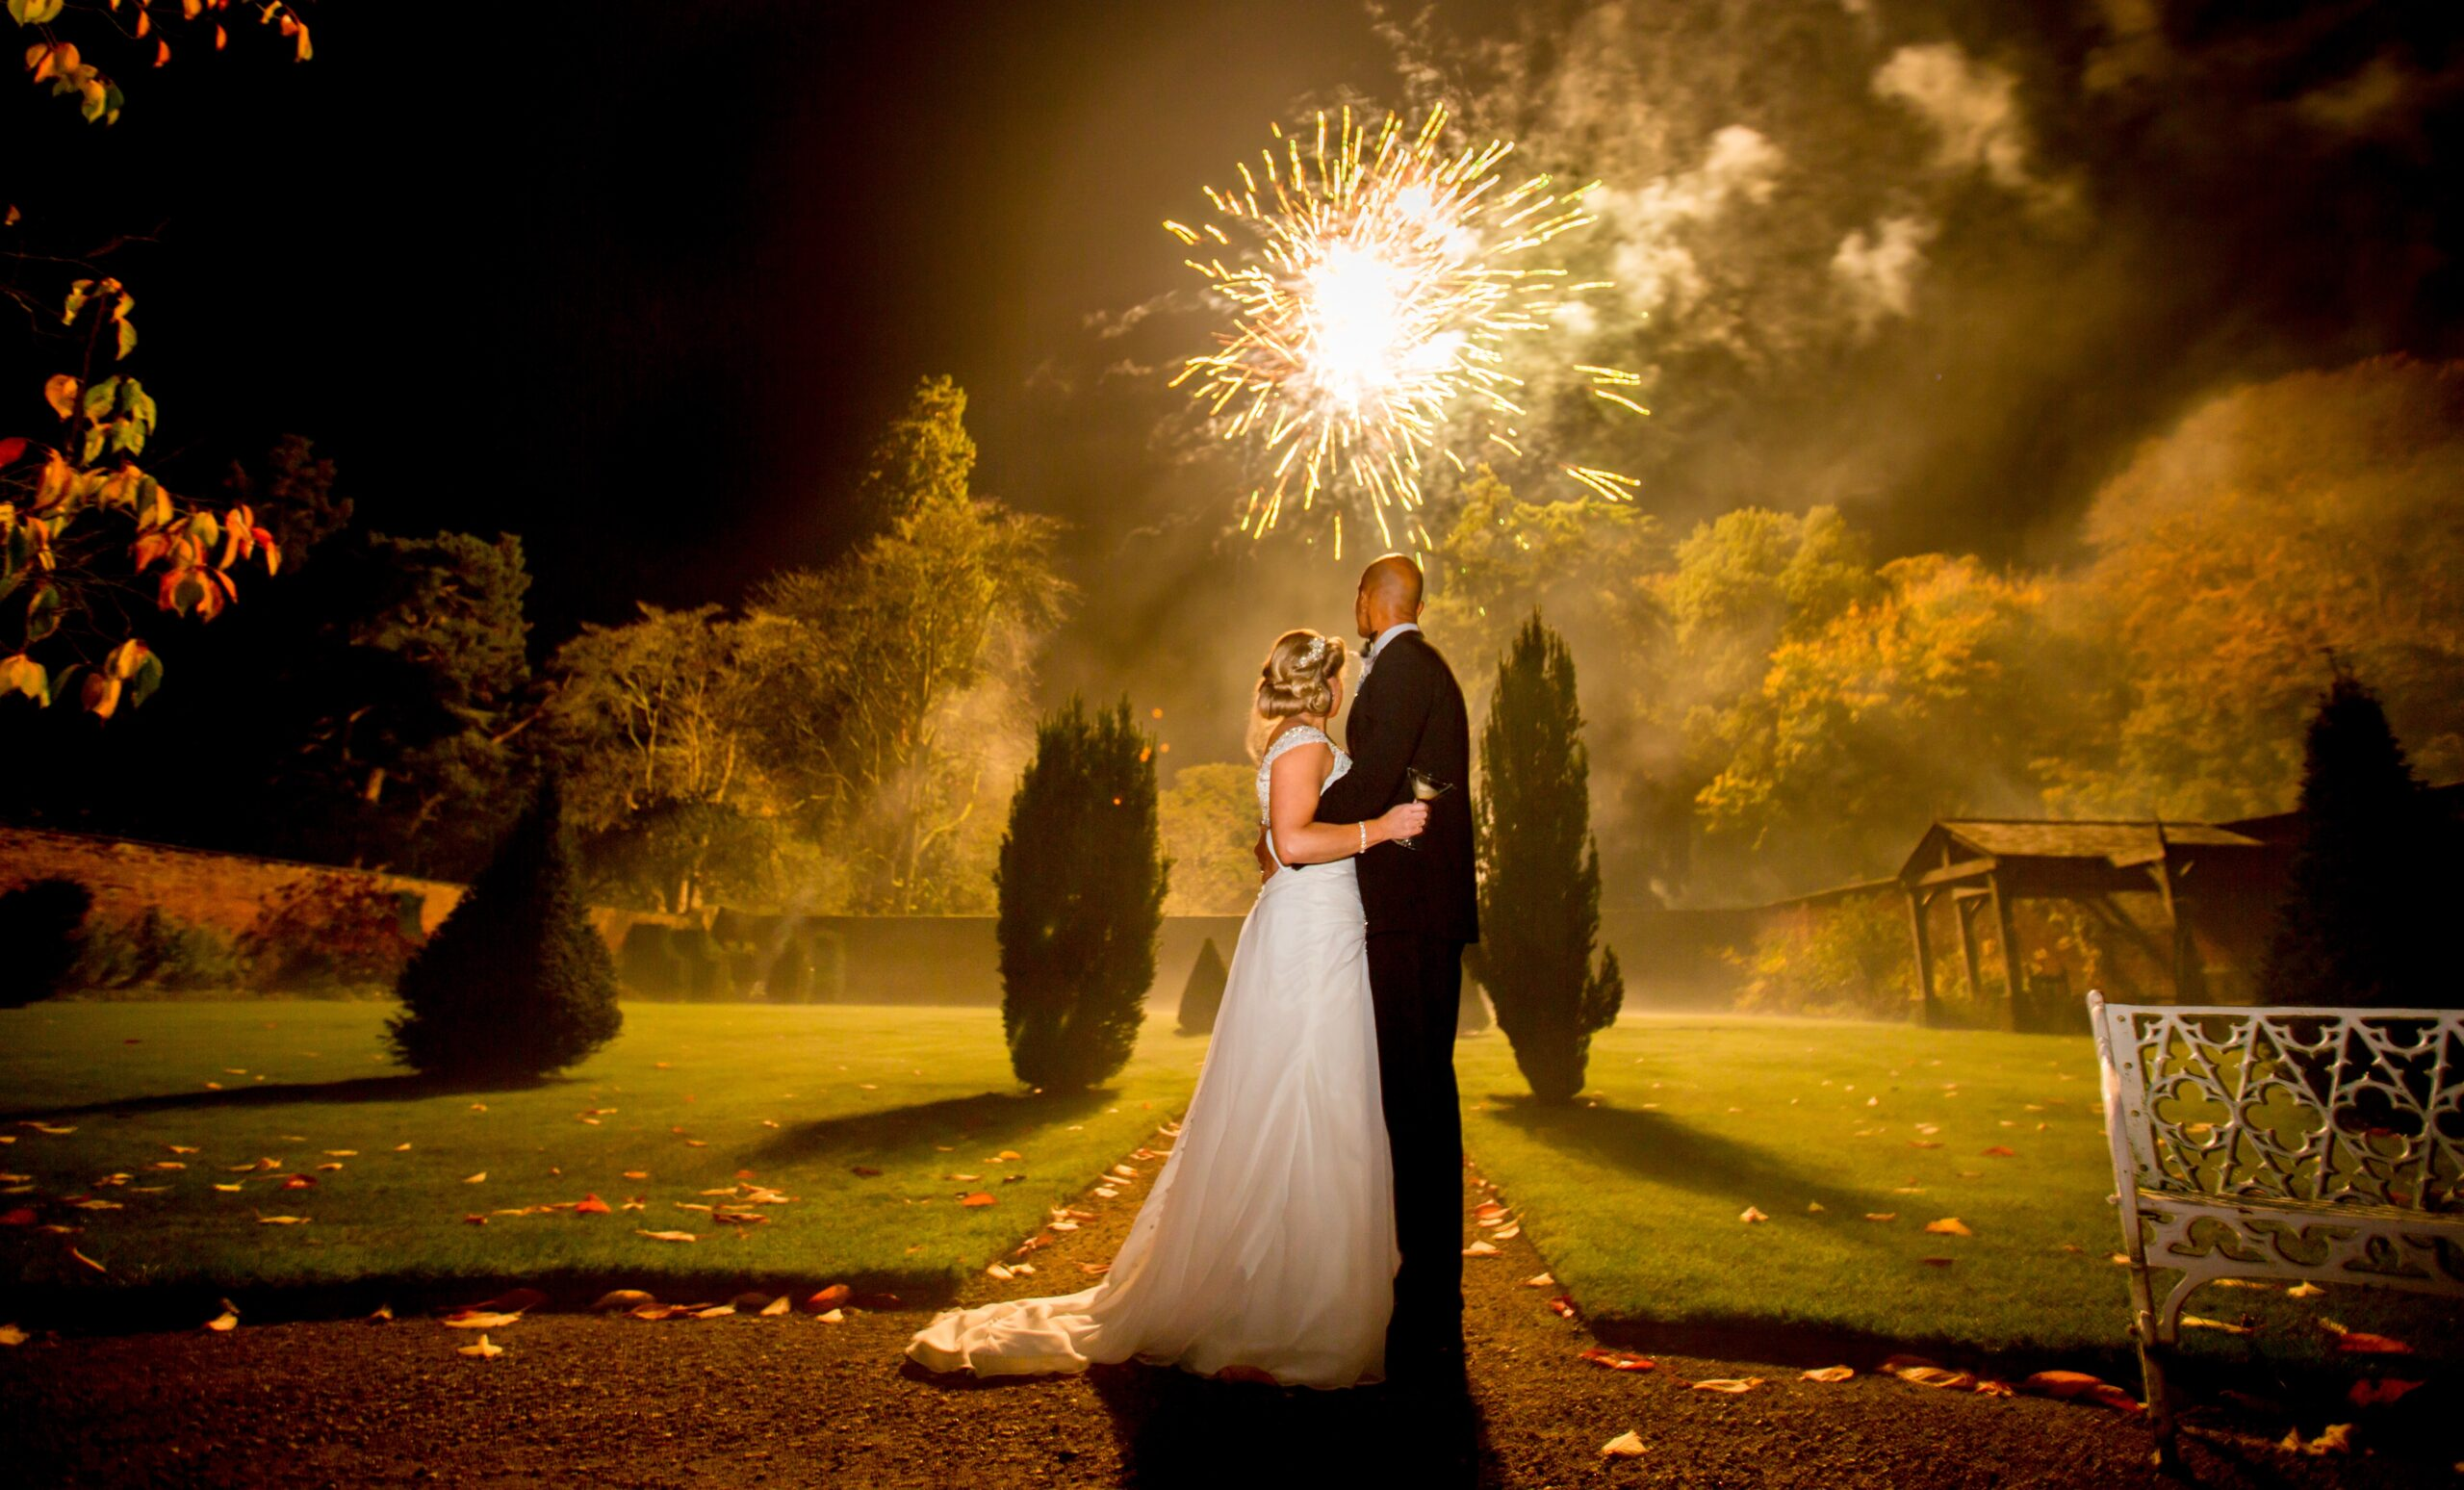 How to surprise your wedding guests